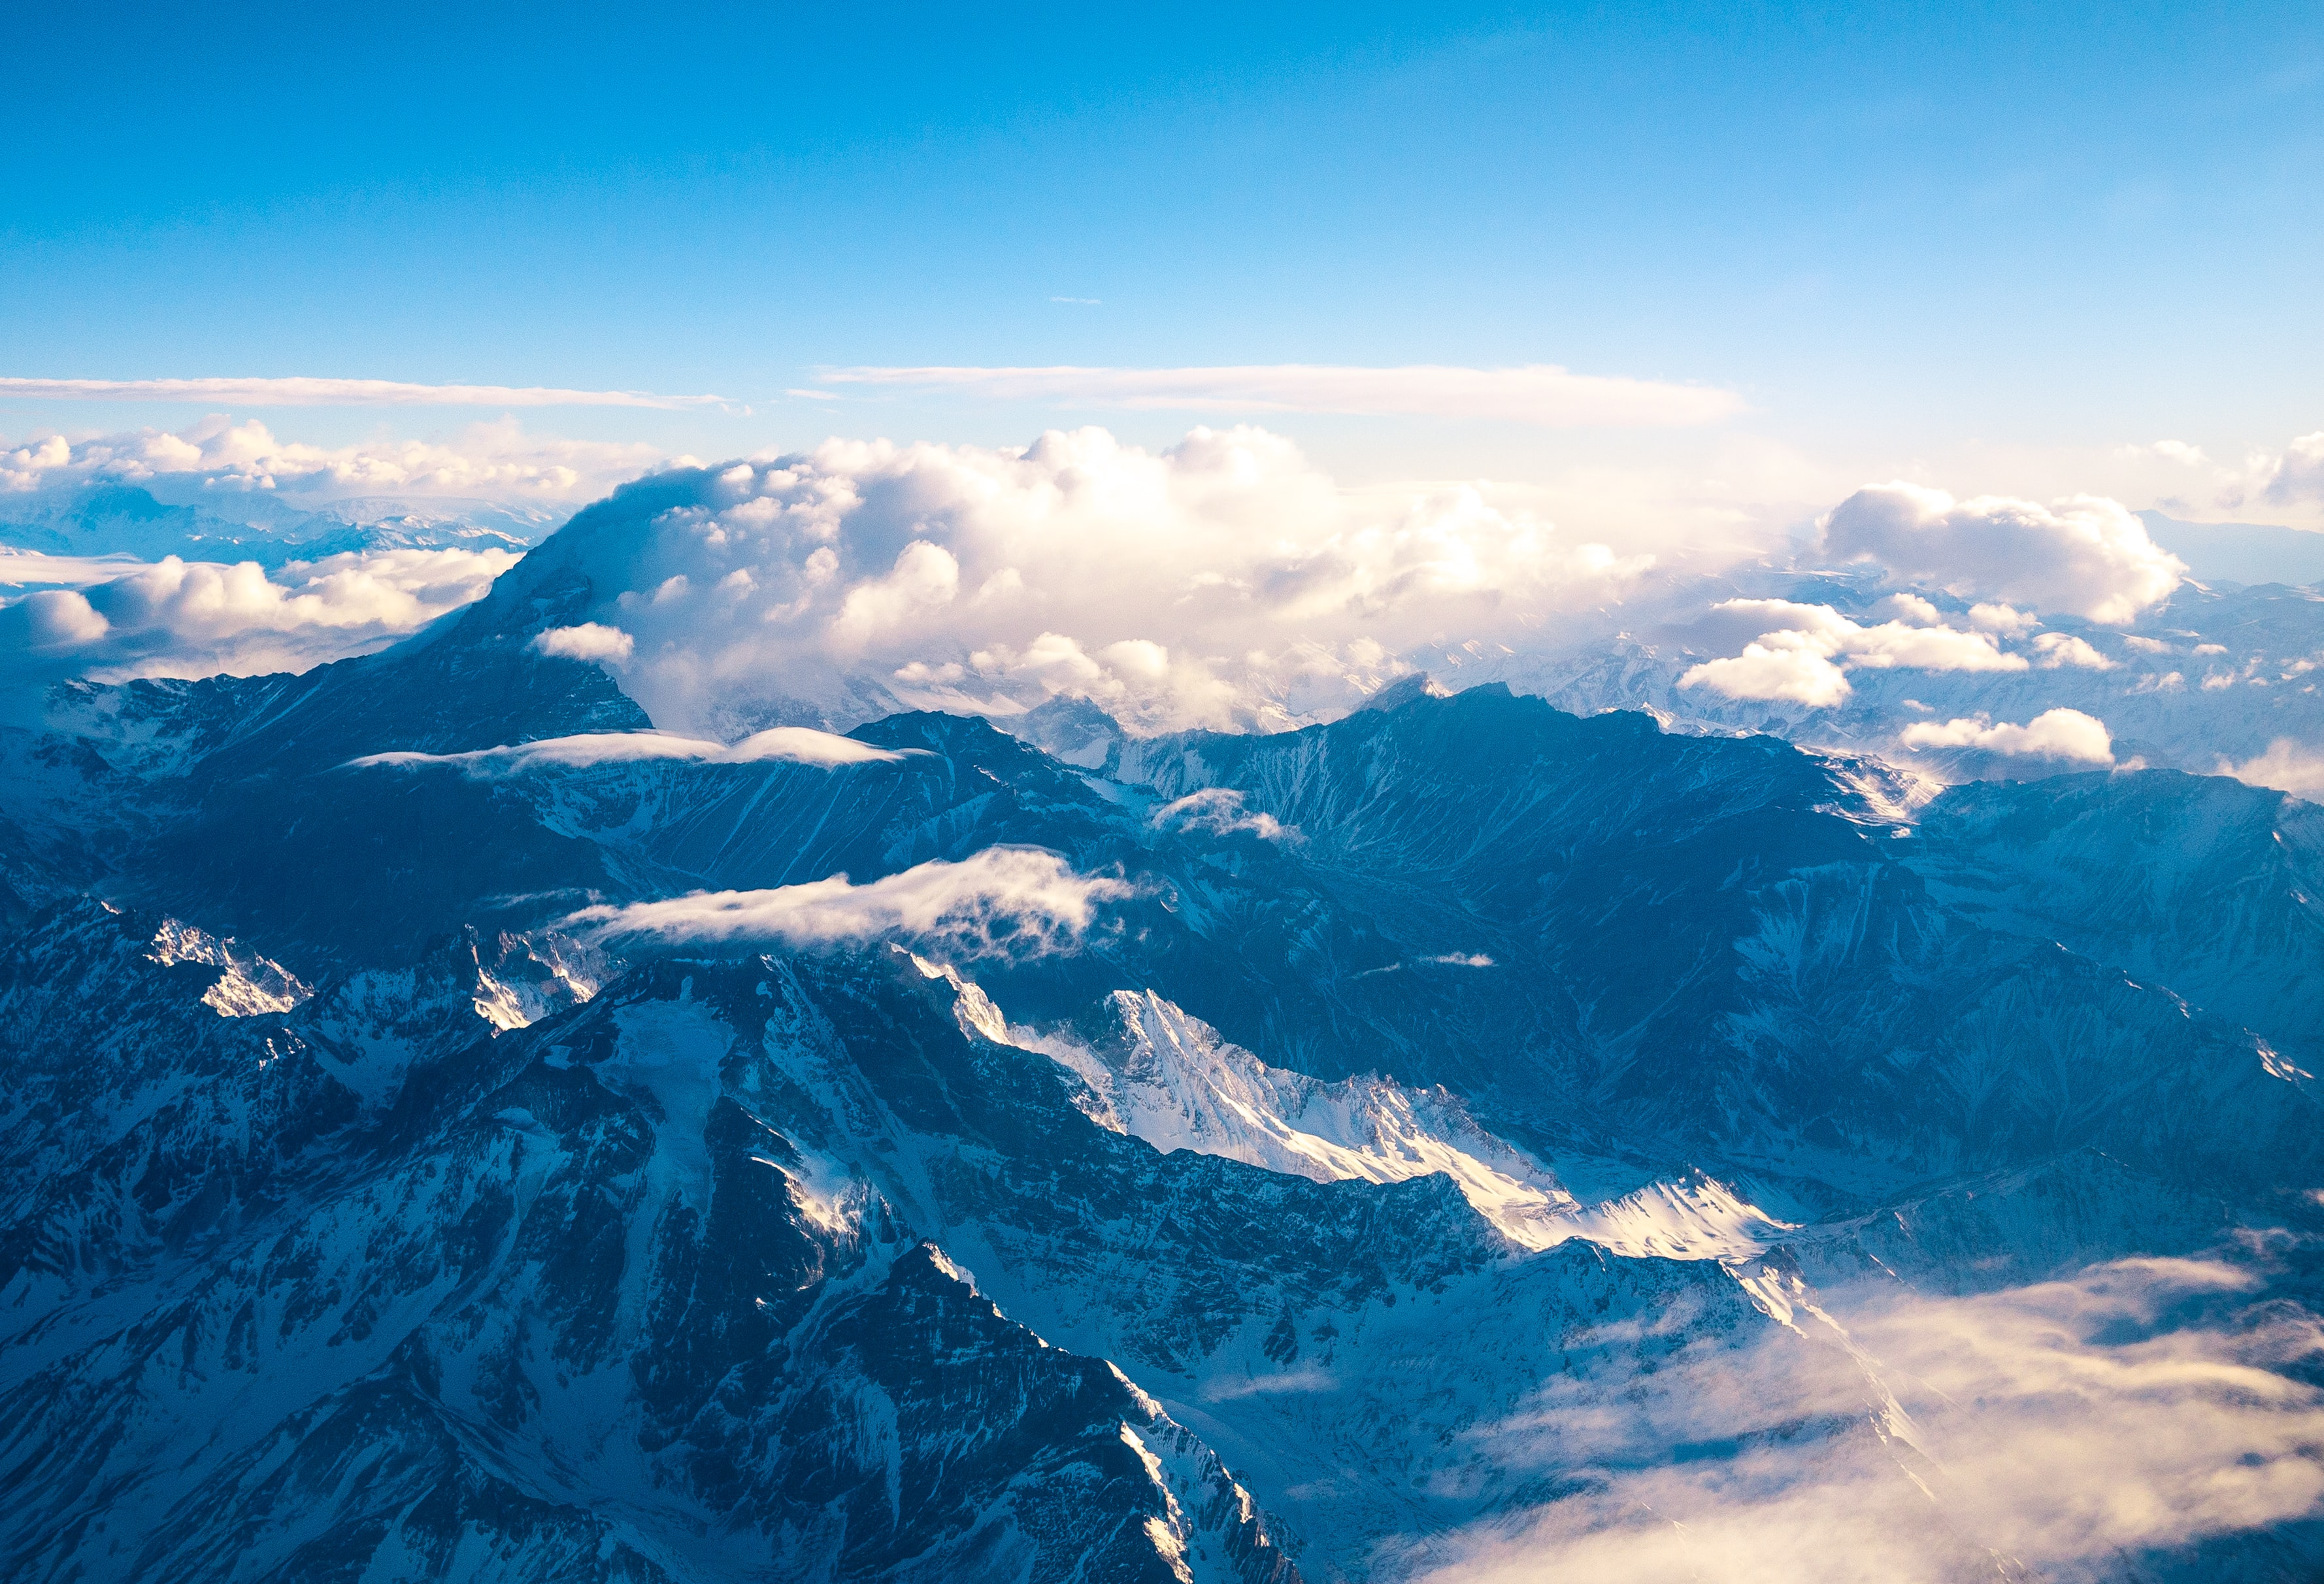 An aerial shot of a tall mountain range under white clouds